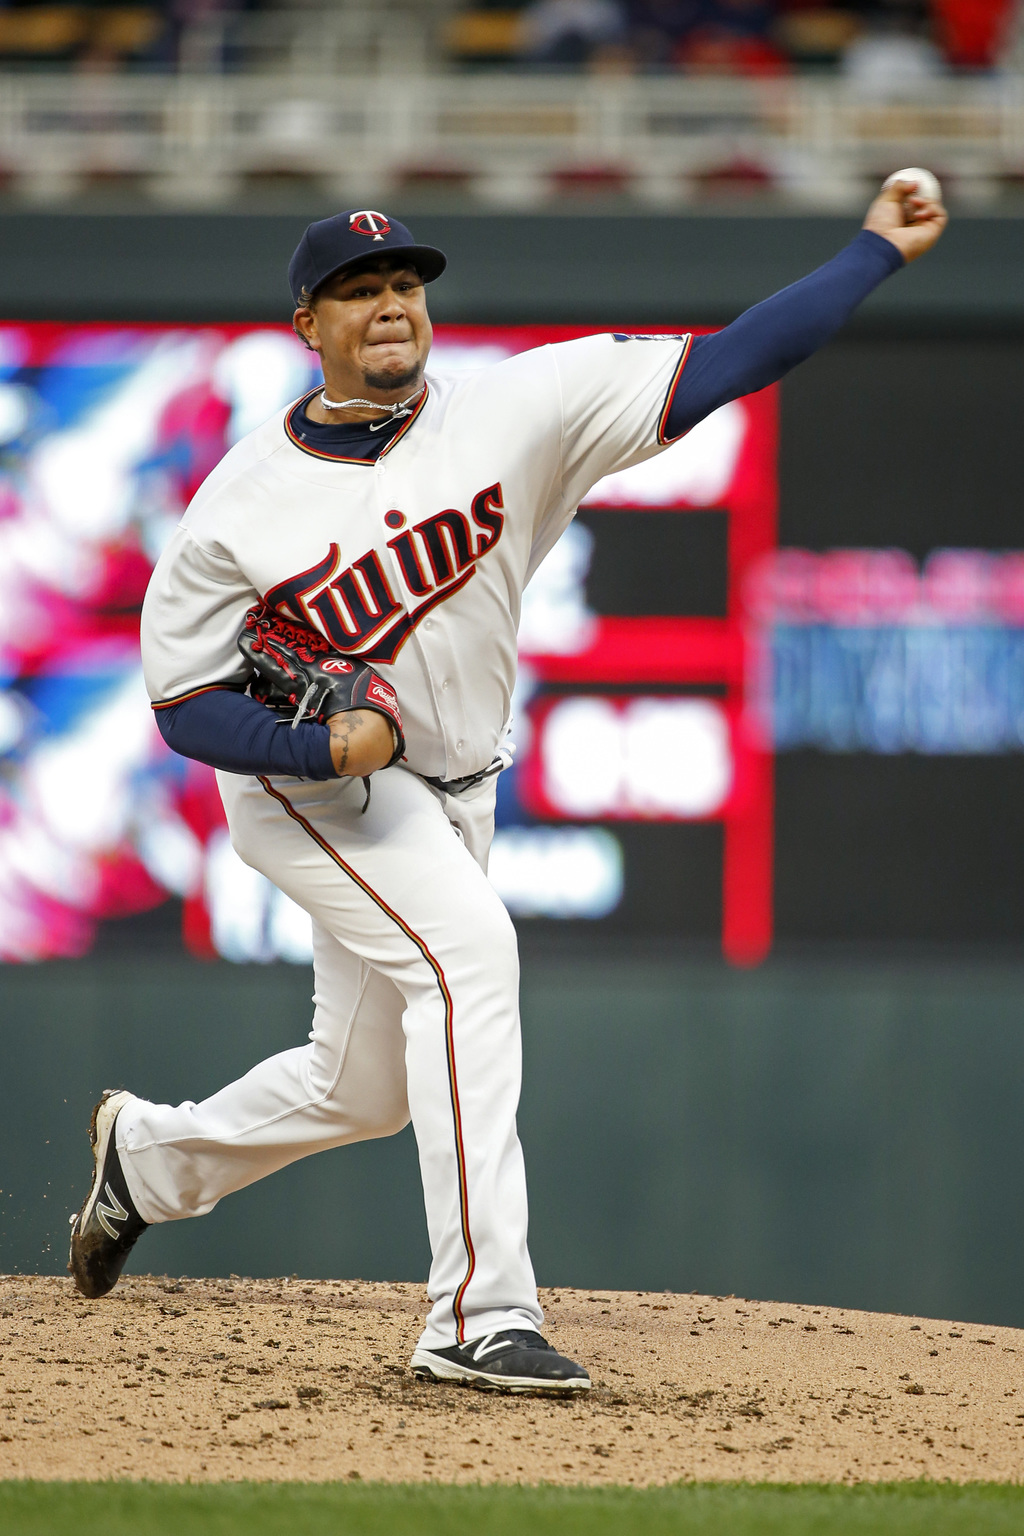 Minnesota Twins starting pitcher Adalberto Mejia throws to the Texas Rangers in the second inning of a baseball game Thursday, Aug. 3, 2017, in Minnea...